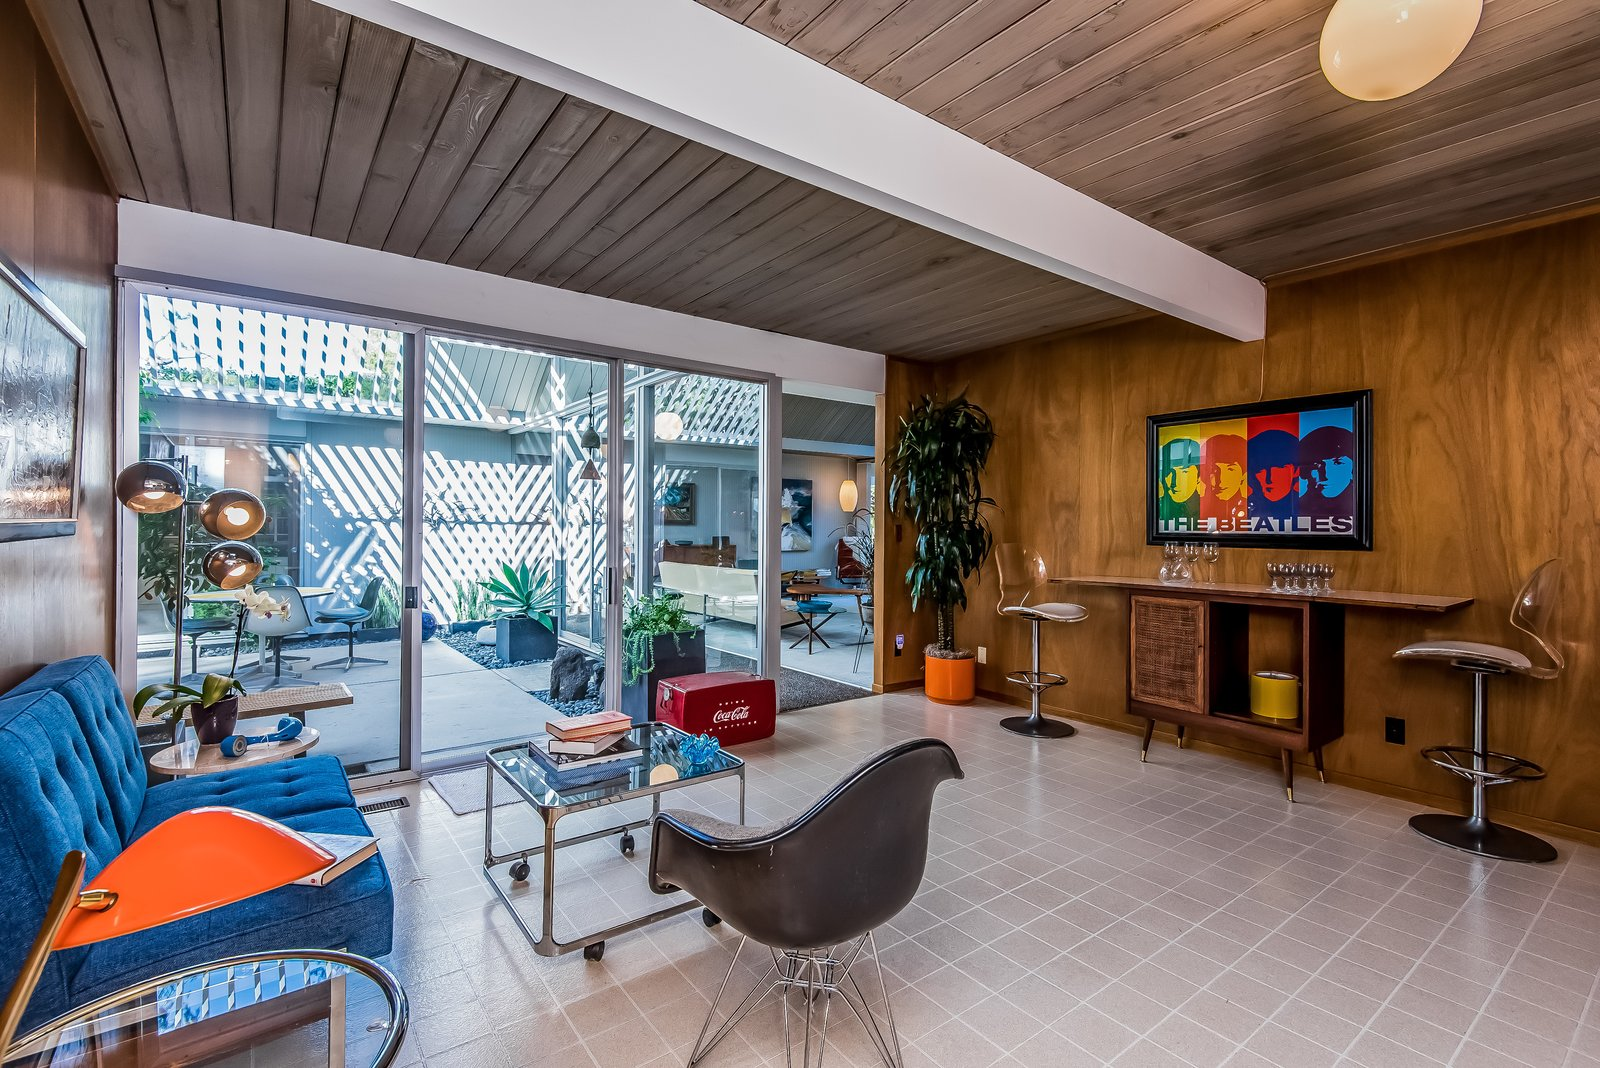 Like so many rooms, the multipurpose room has free access to the atrium, maintaining the indoor/outdoor lifestyle that Eichler championed.